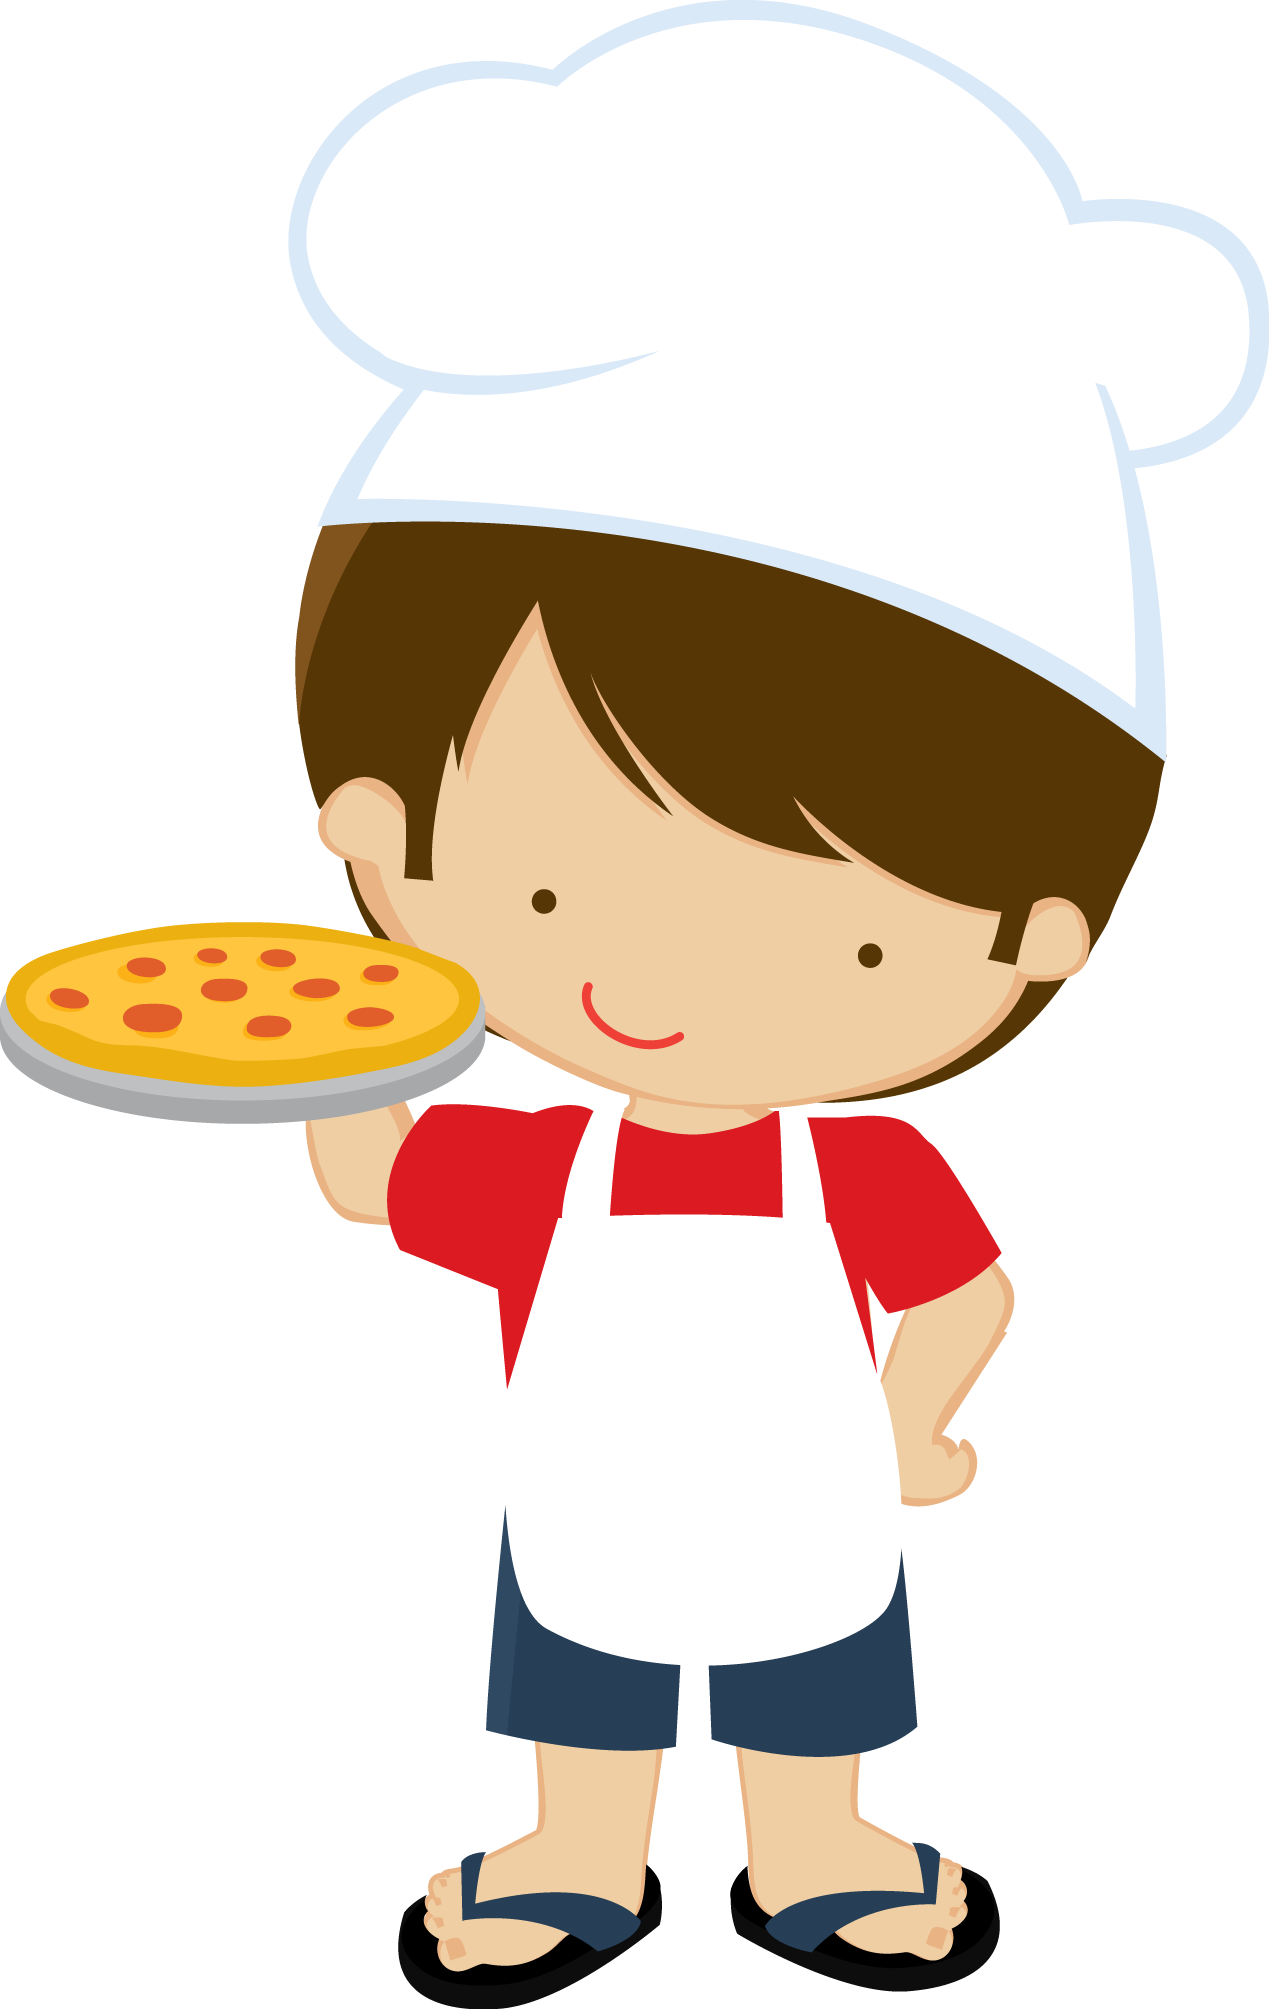 Zwd pizza party boy. Cooking clipart food sampling